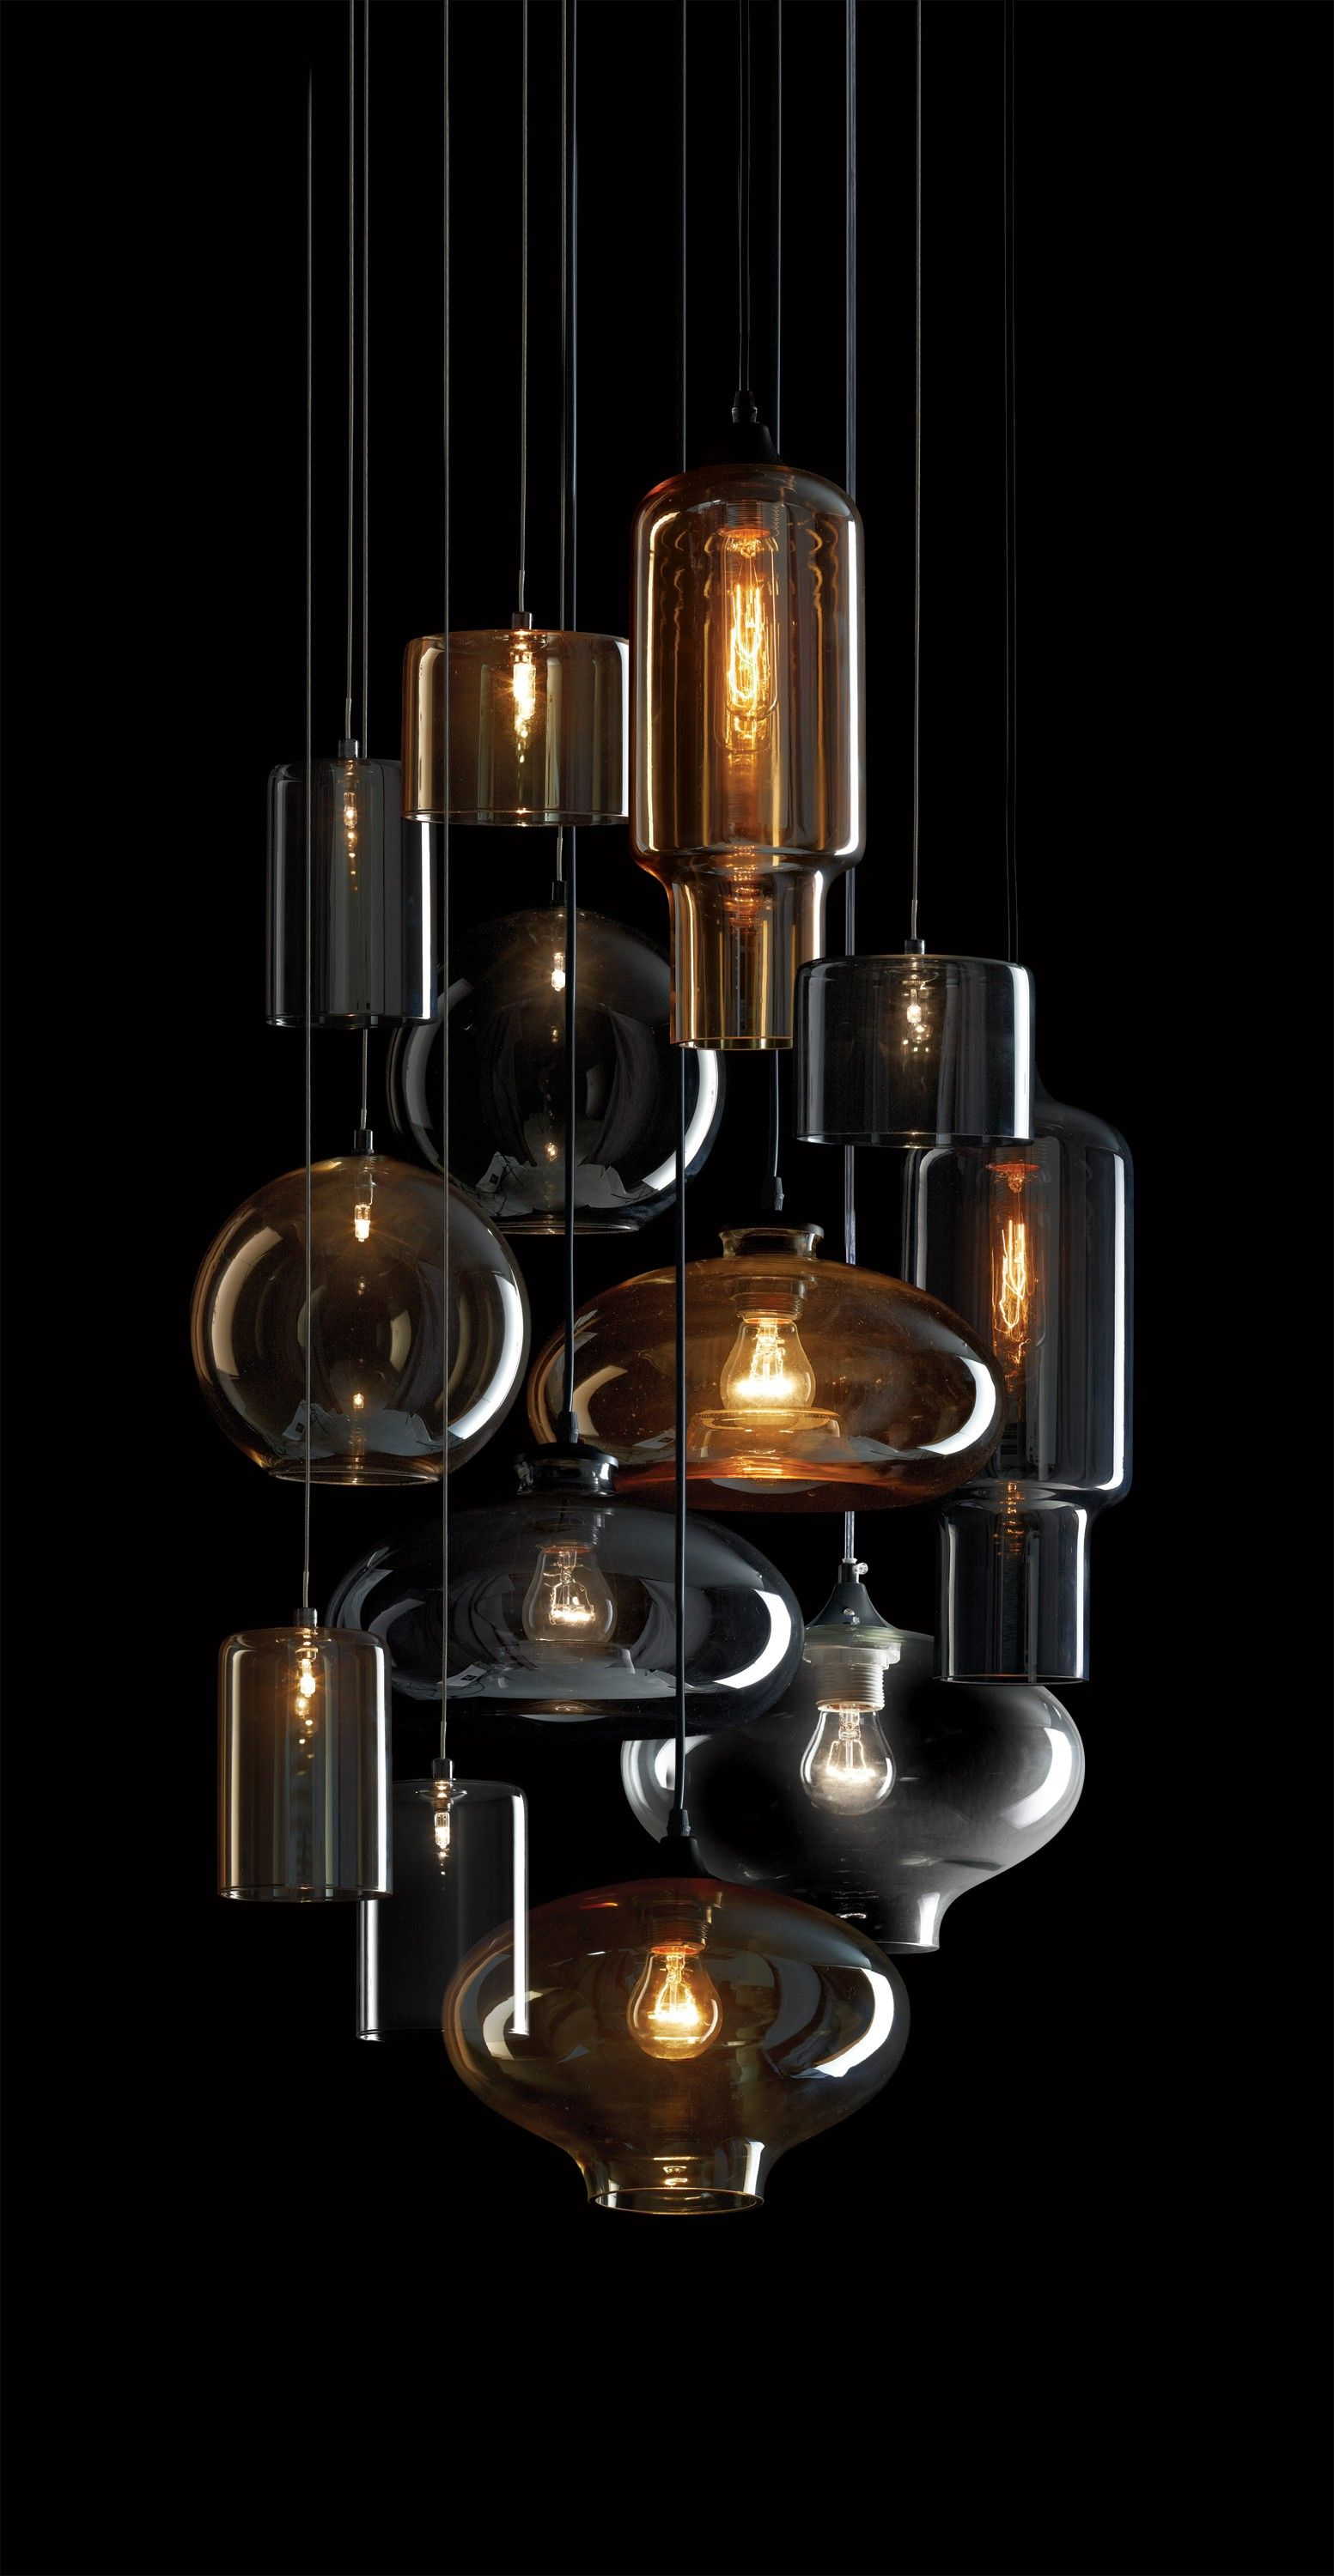 f furniture chandelier at glass art milk id chandeliers img sale copper and master deco lighting pendant for lights schoolhouse